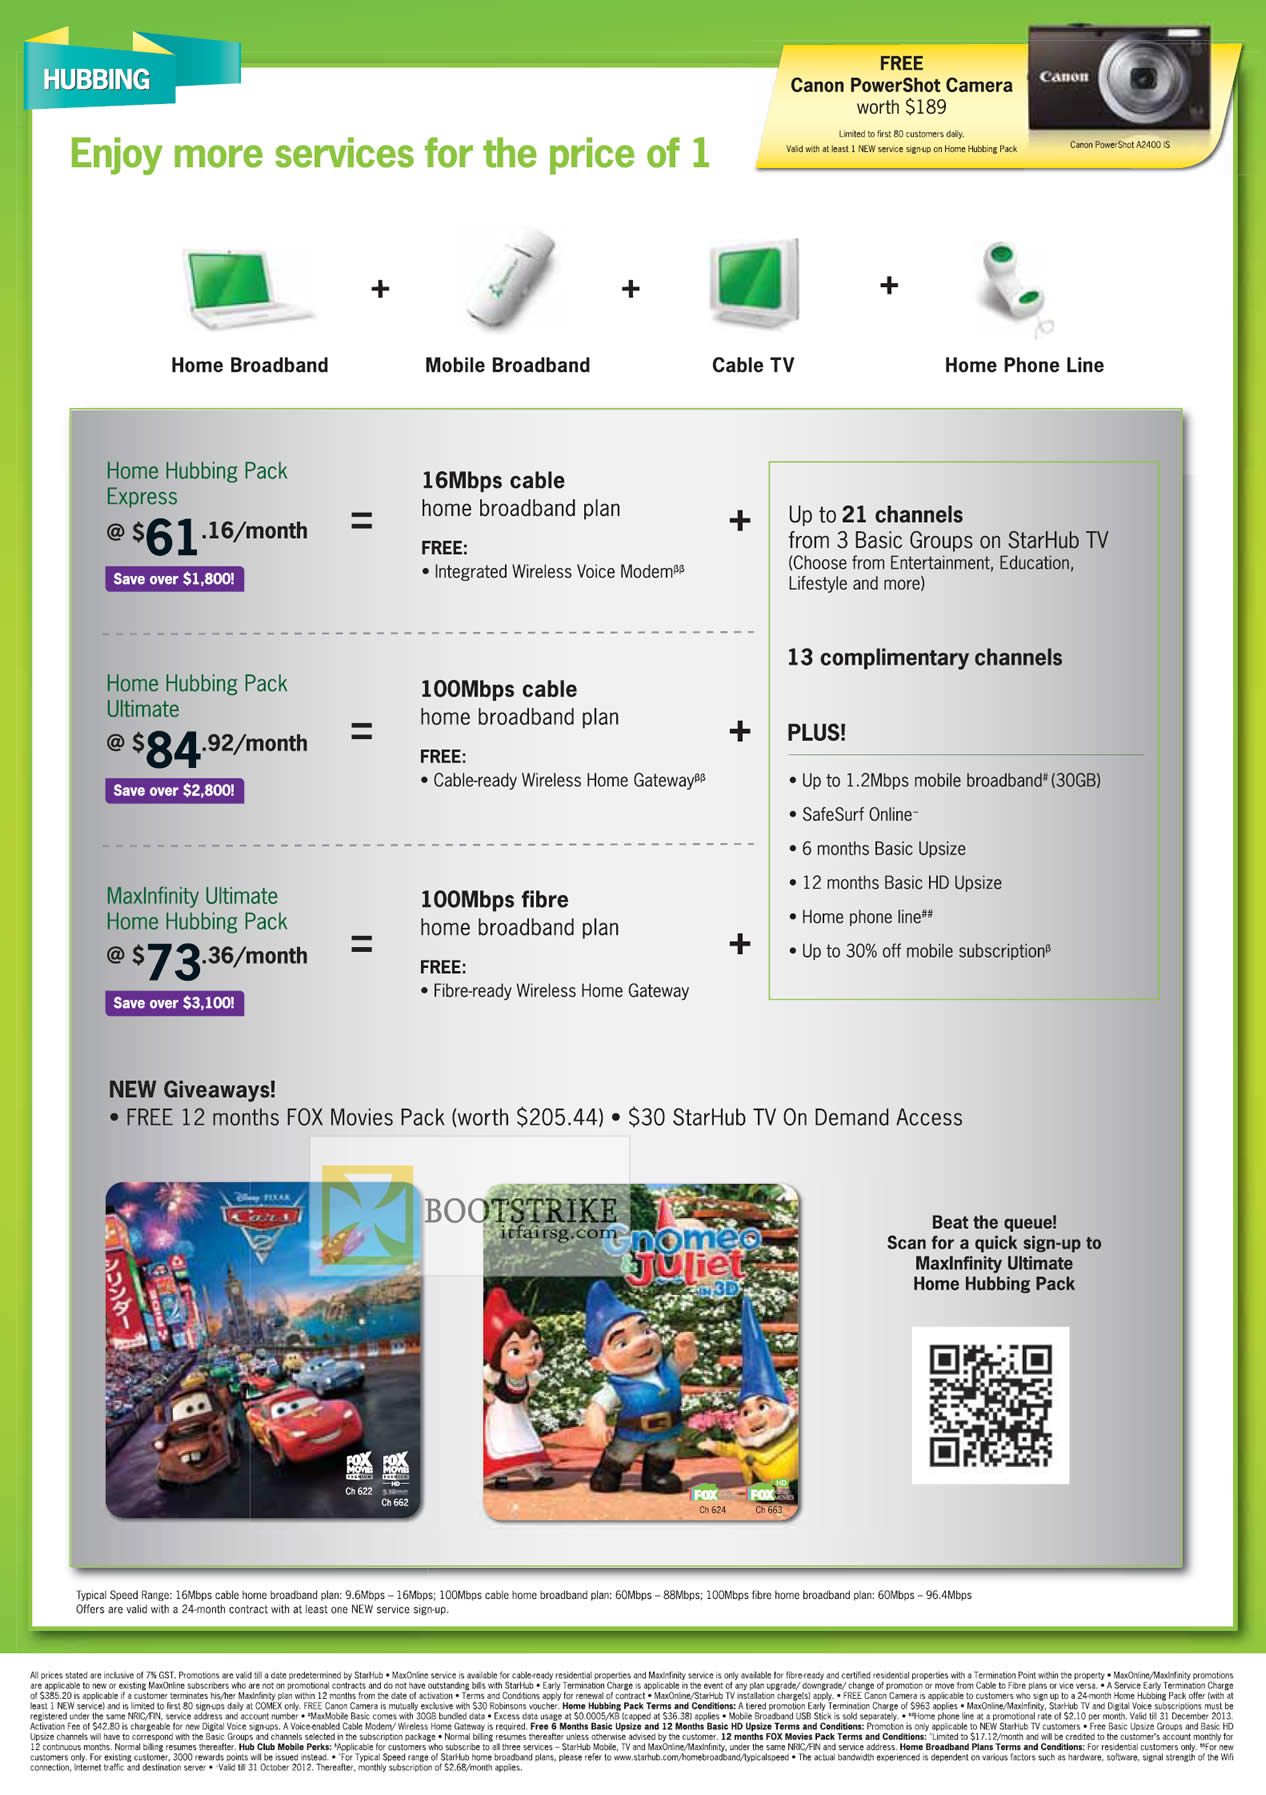 COMEX 2012 price list image brochure of Starhub Home Hubbing Packs, Free 12 Months Fox Movies Pack, TV On Demand